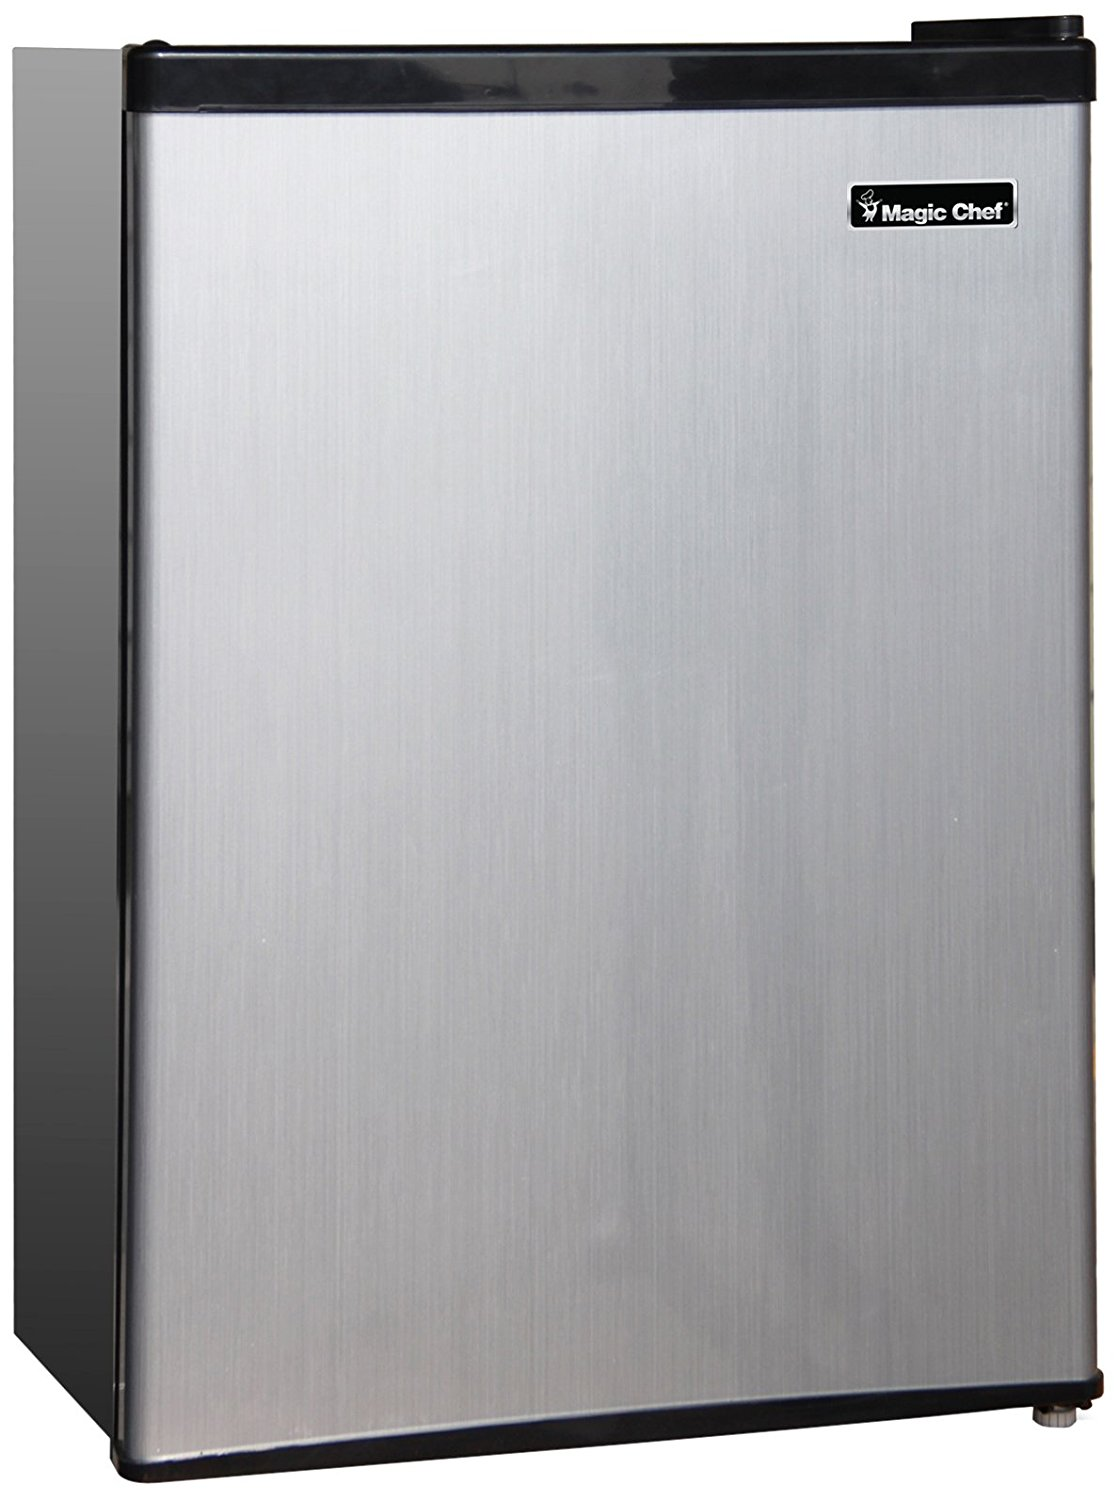 Magic Chef MCBR240S1 Refrigerator, 2.4 cu. ft., Stainless Look